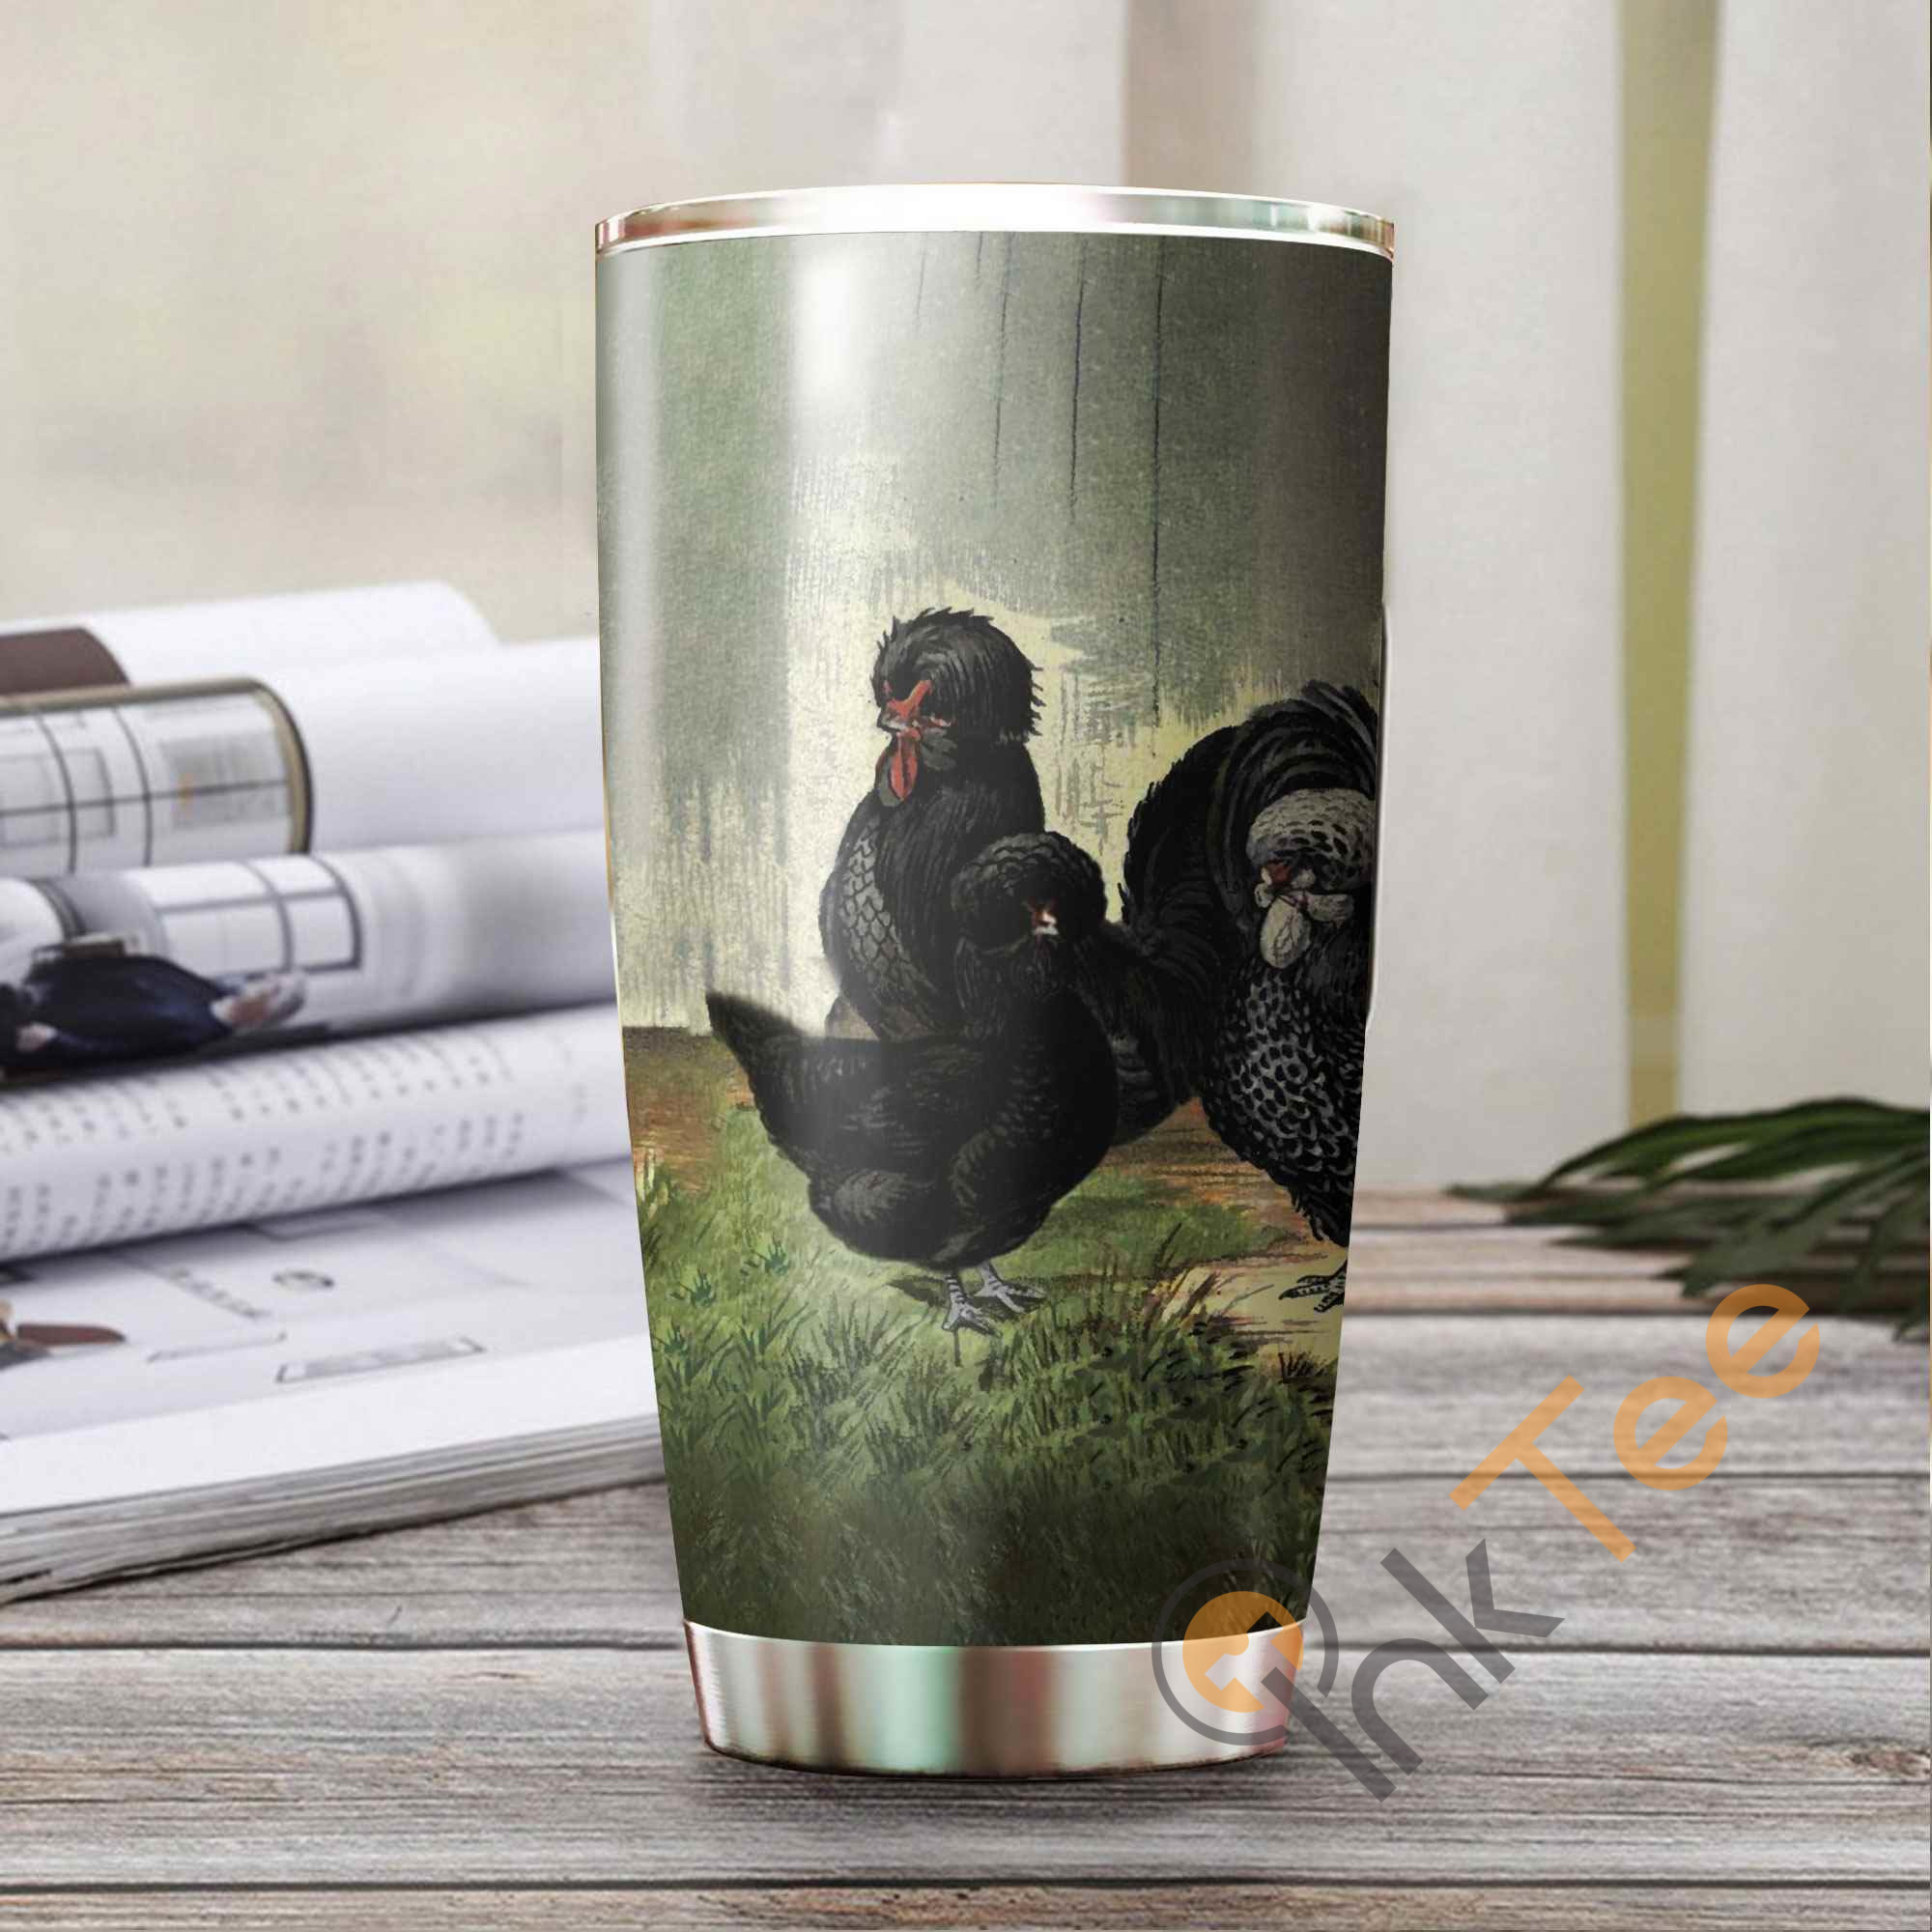 Beautiful French Breeds Chickens Chicken Amazon Best Seller Sku 2850 Stainless Steel Tumbler